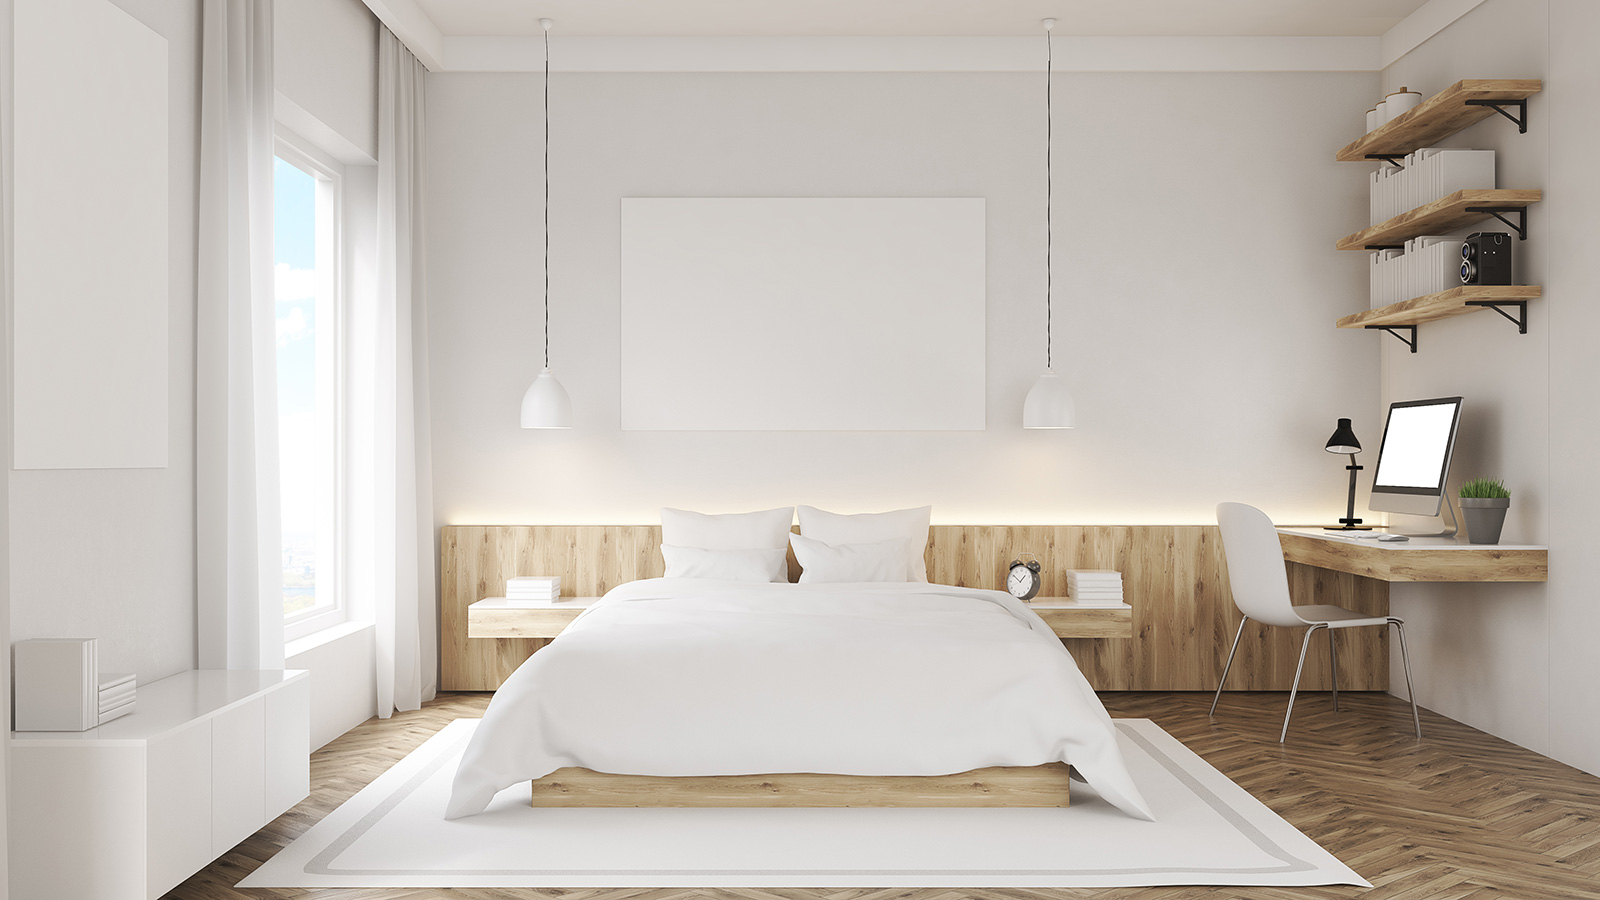 Bright bedroom with wood decor